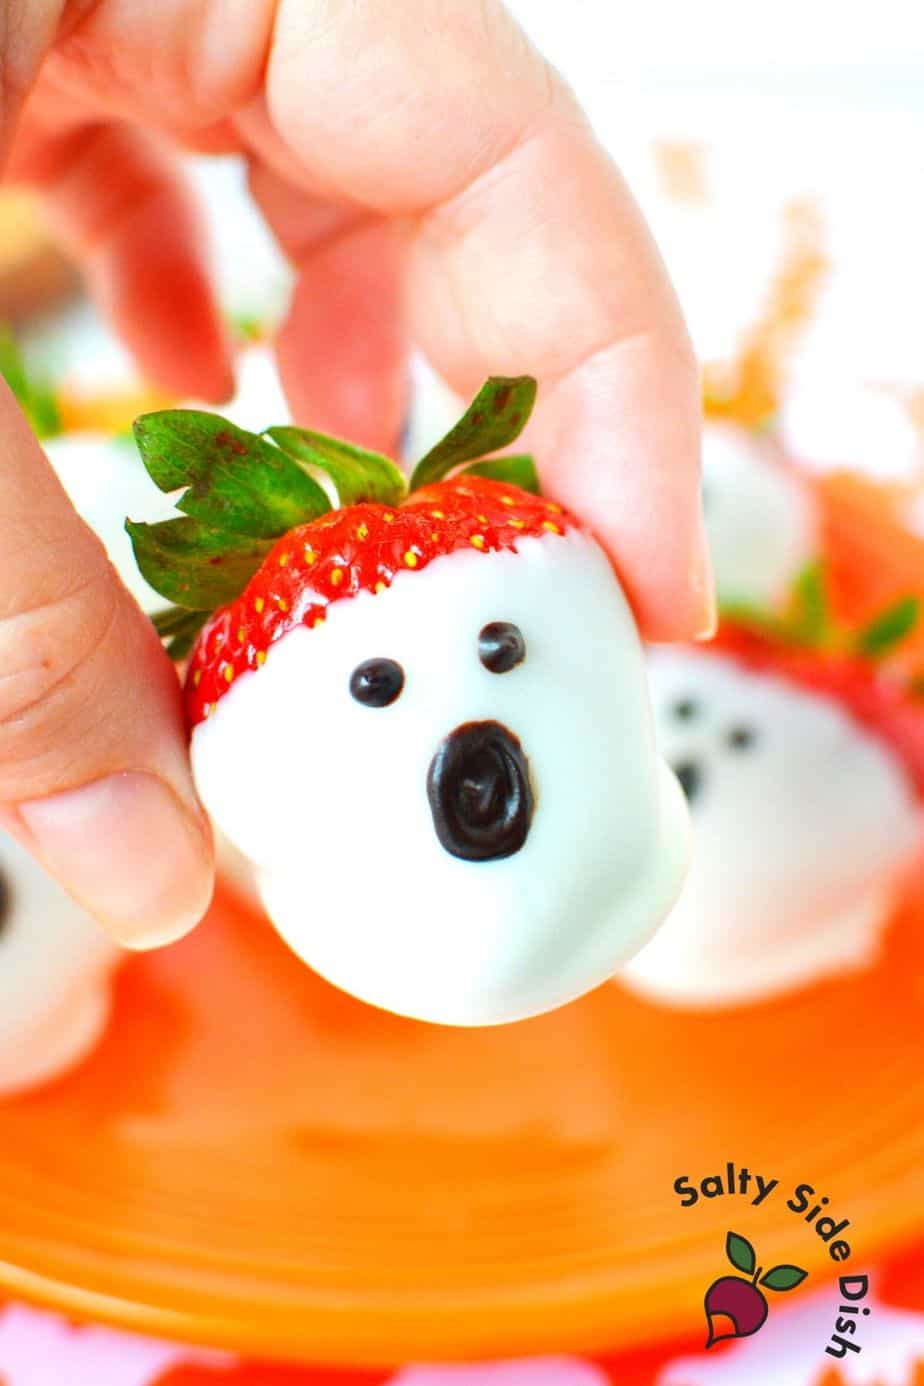 Strawberries dipped in white chocolate and decorated to look like ghosts